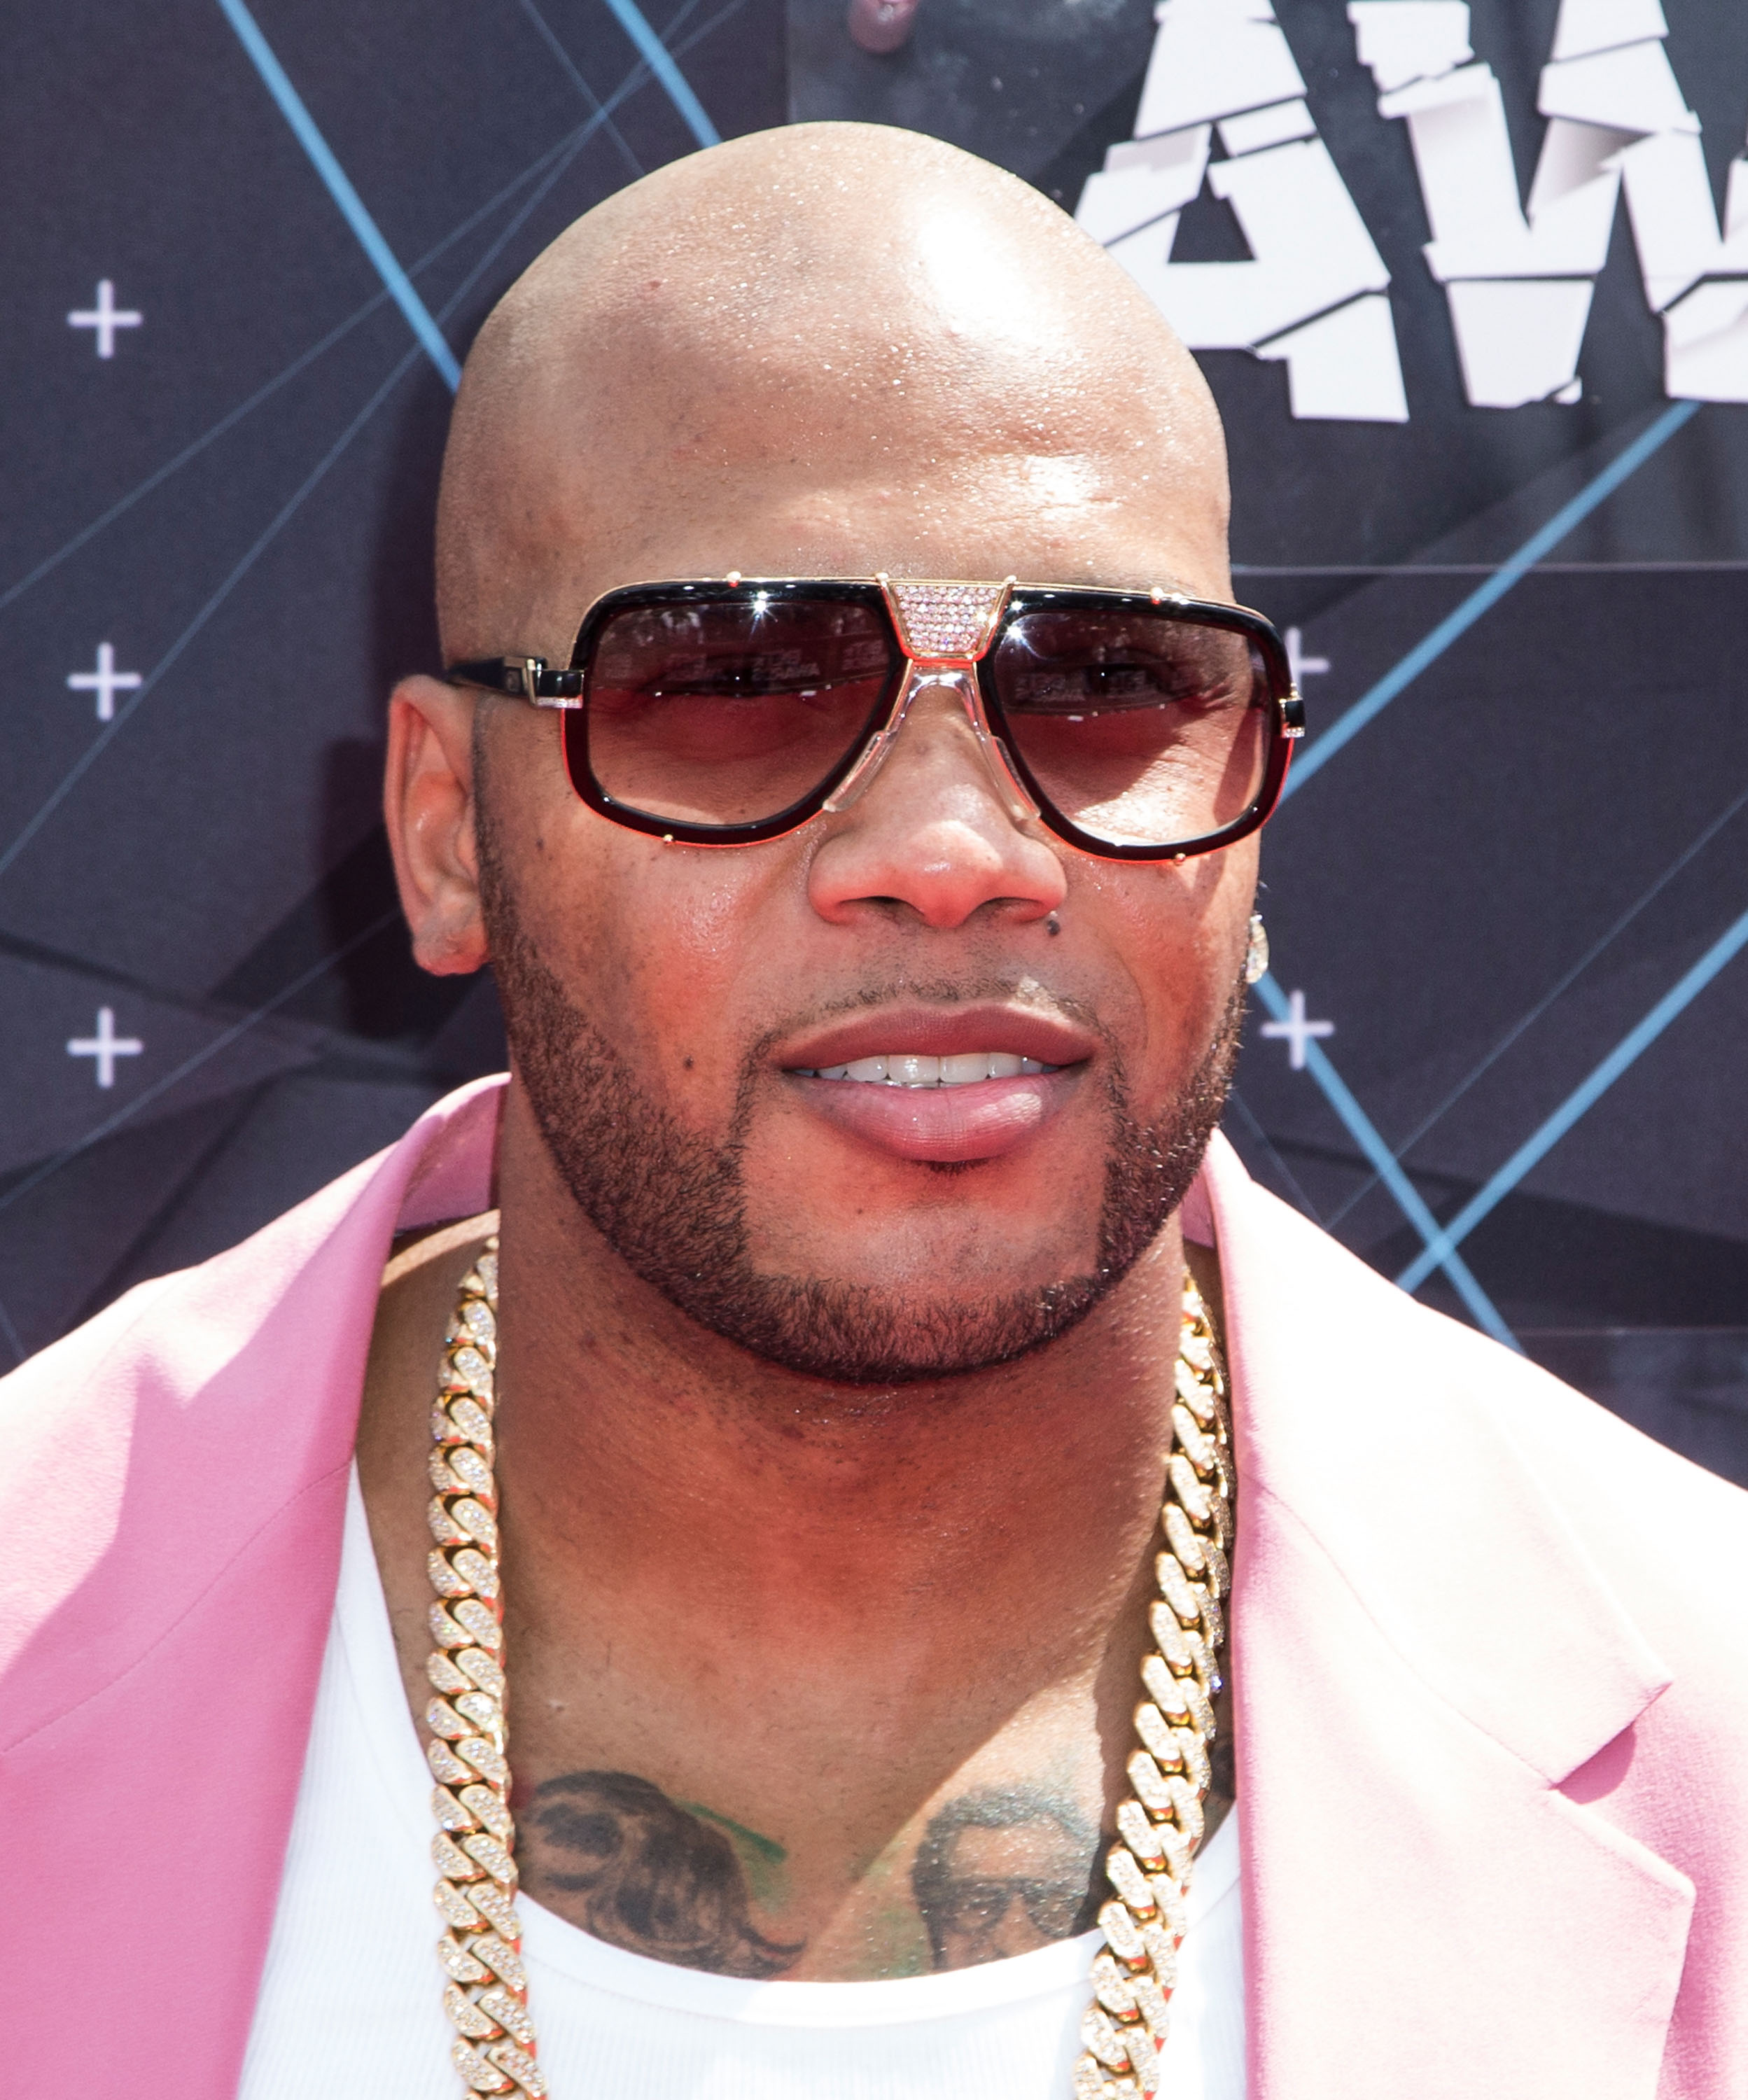 Rapper Flo Rida attends the 2015 BET Awards on June 28, 2015 in Los Angeles, Calif.